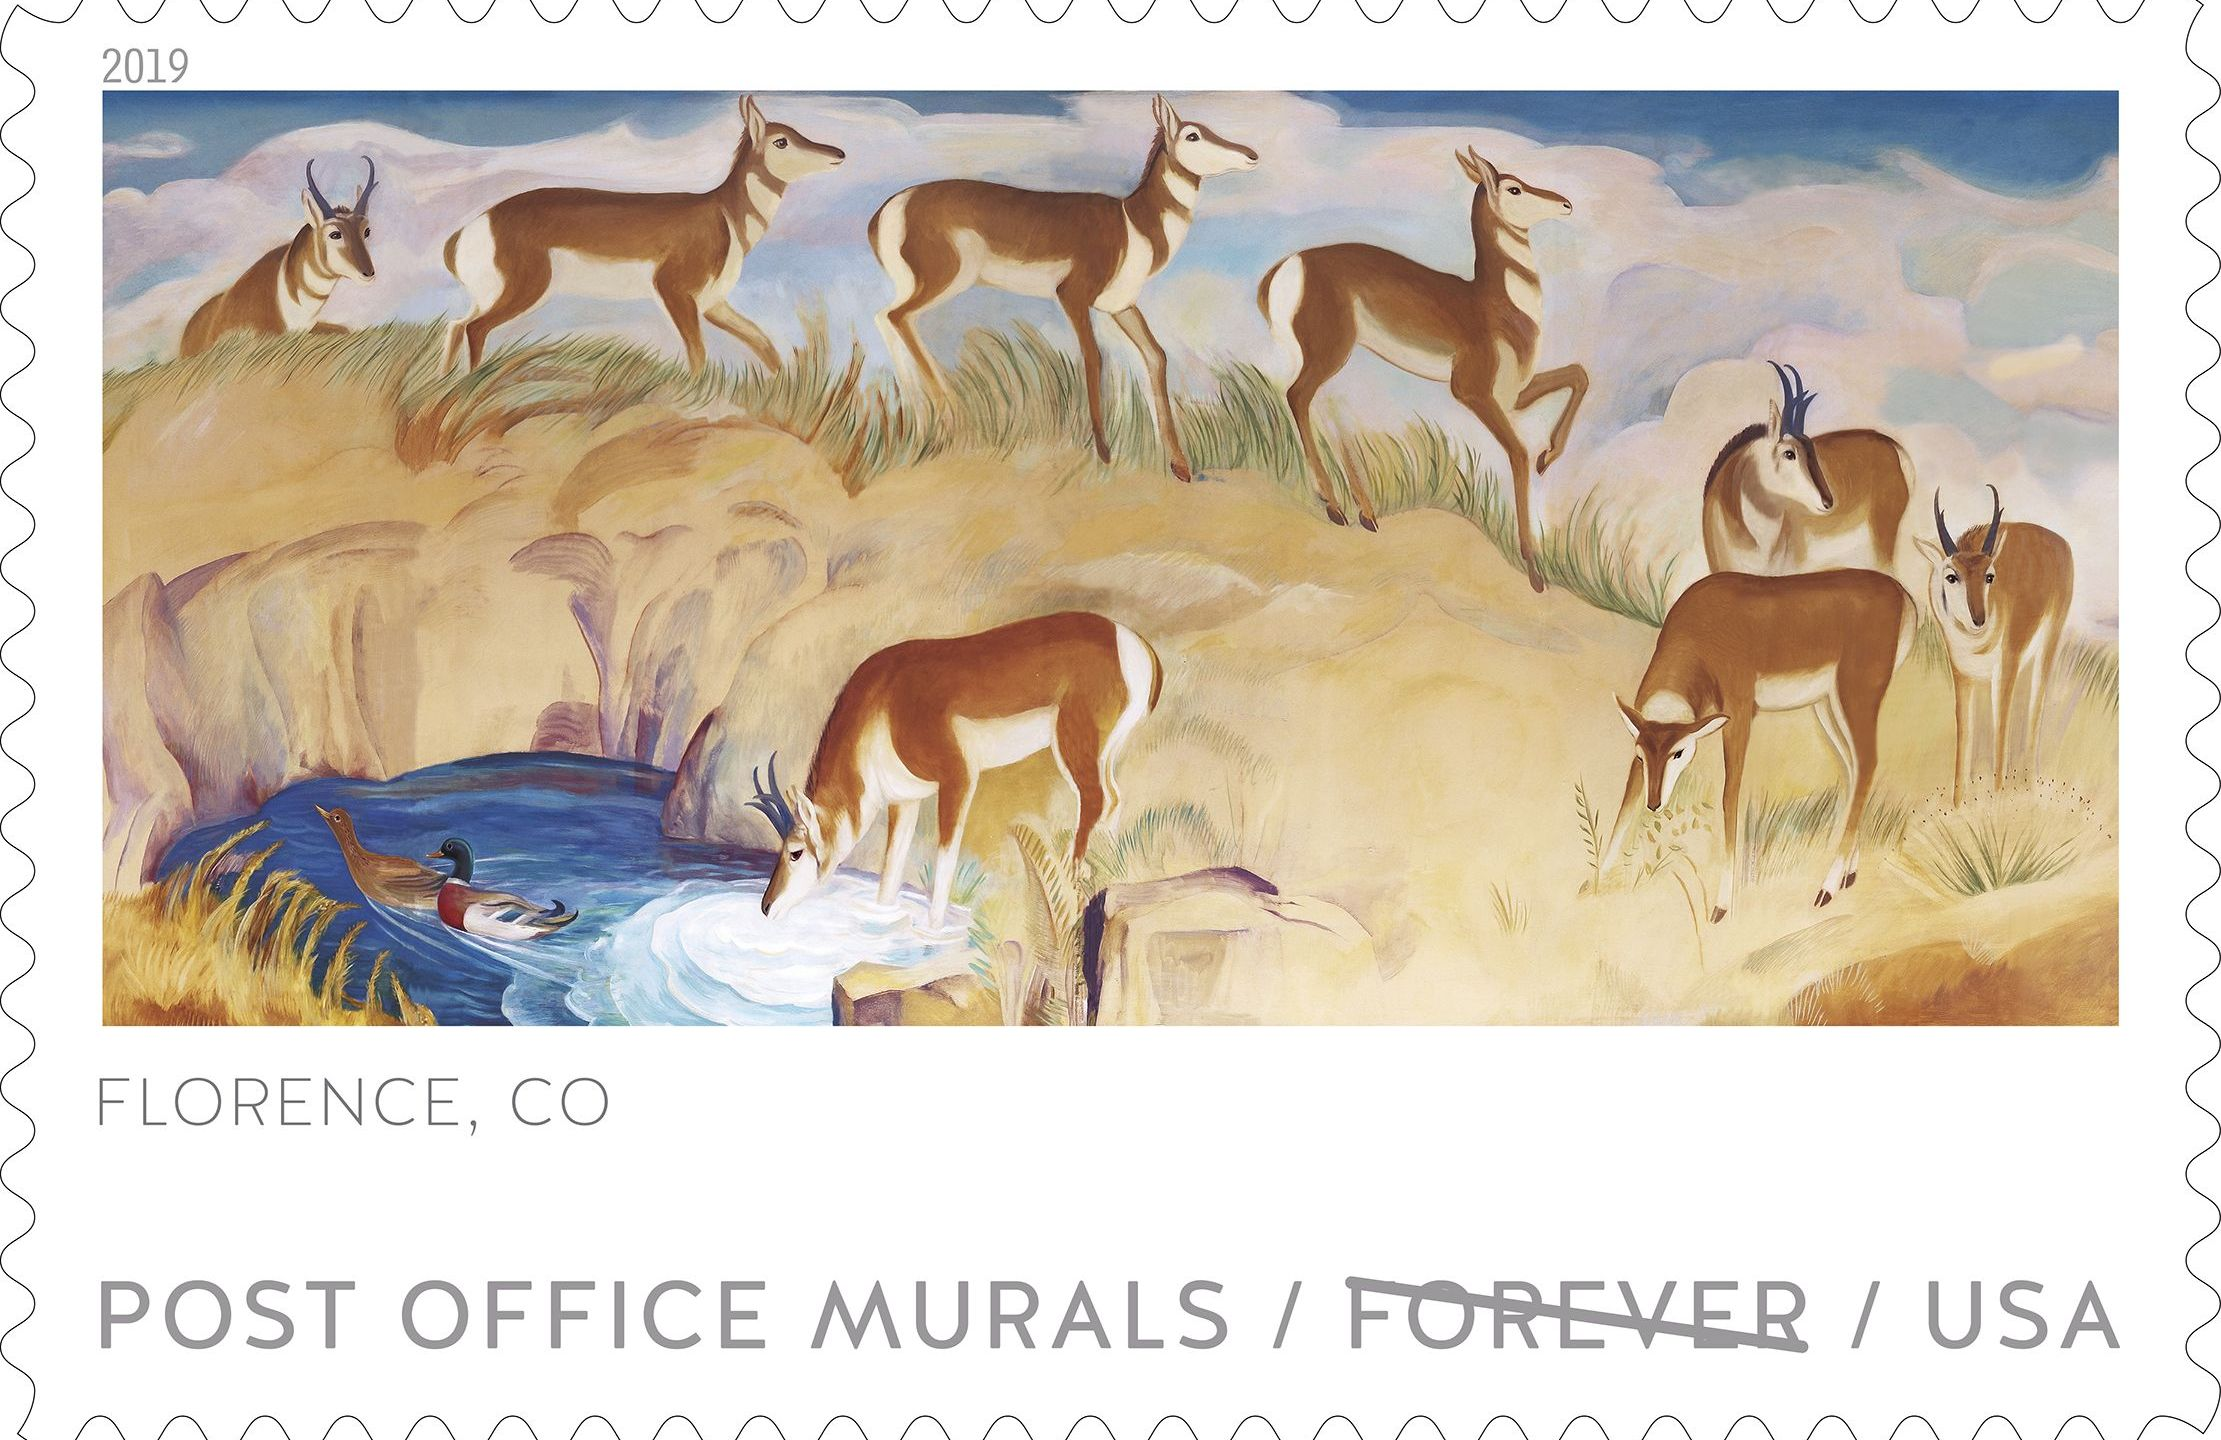 The U.S. Postal Service is introducing a new series of stamps celebrating post office lobby artwork across the country. This stamp features the Antel